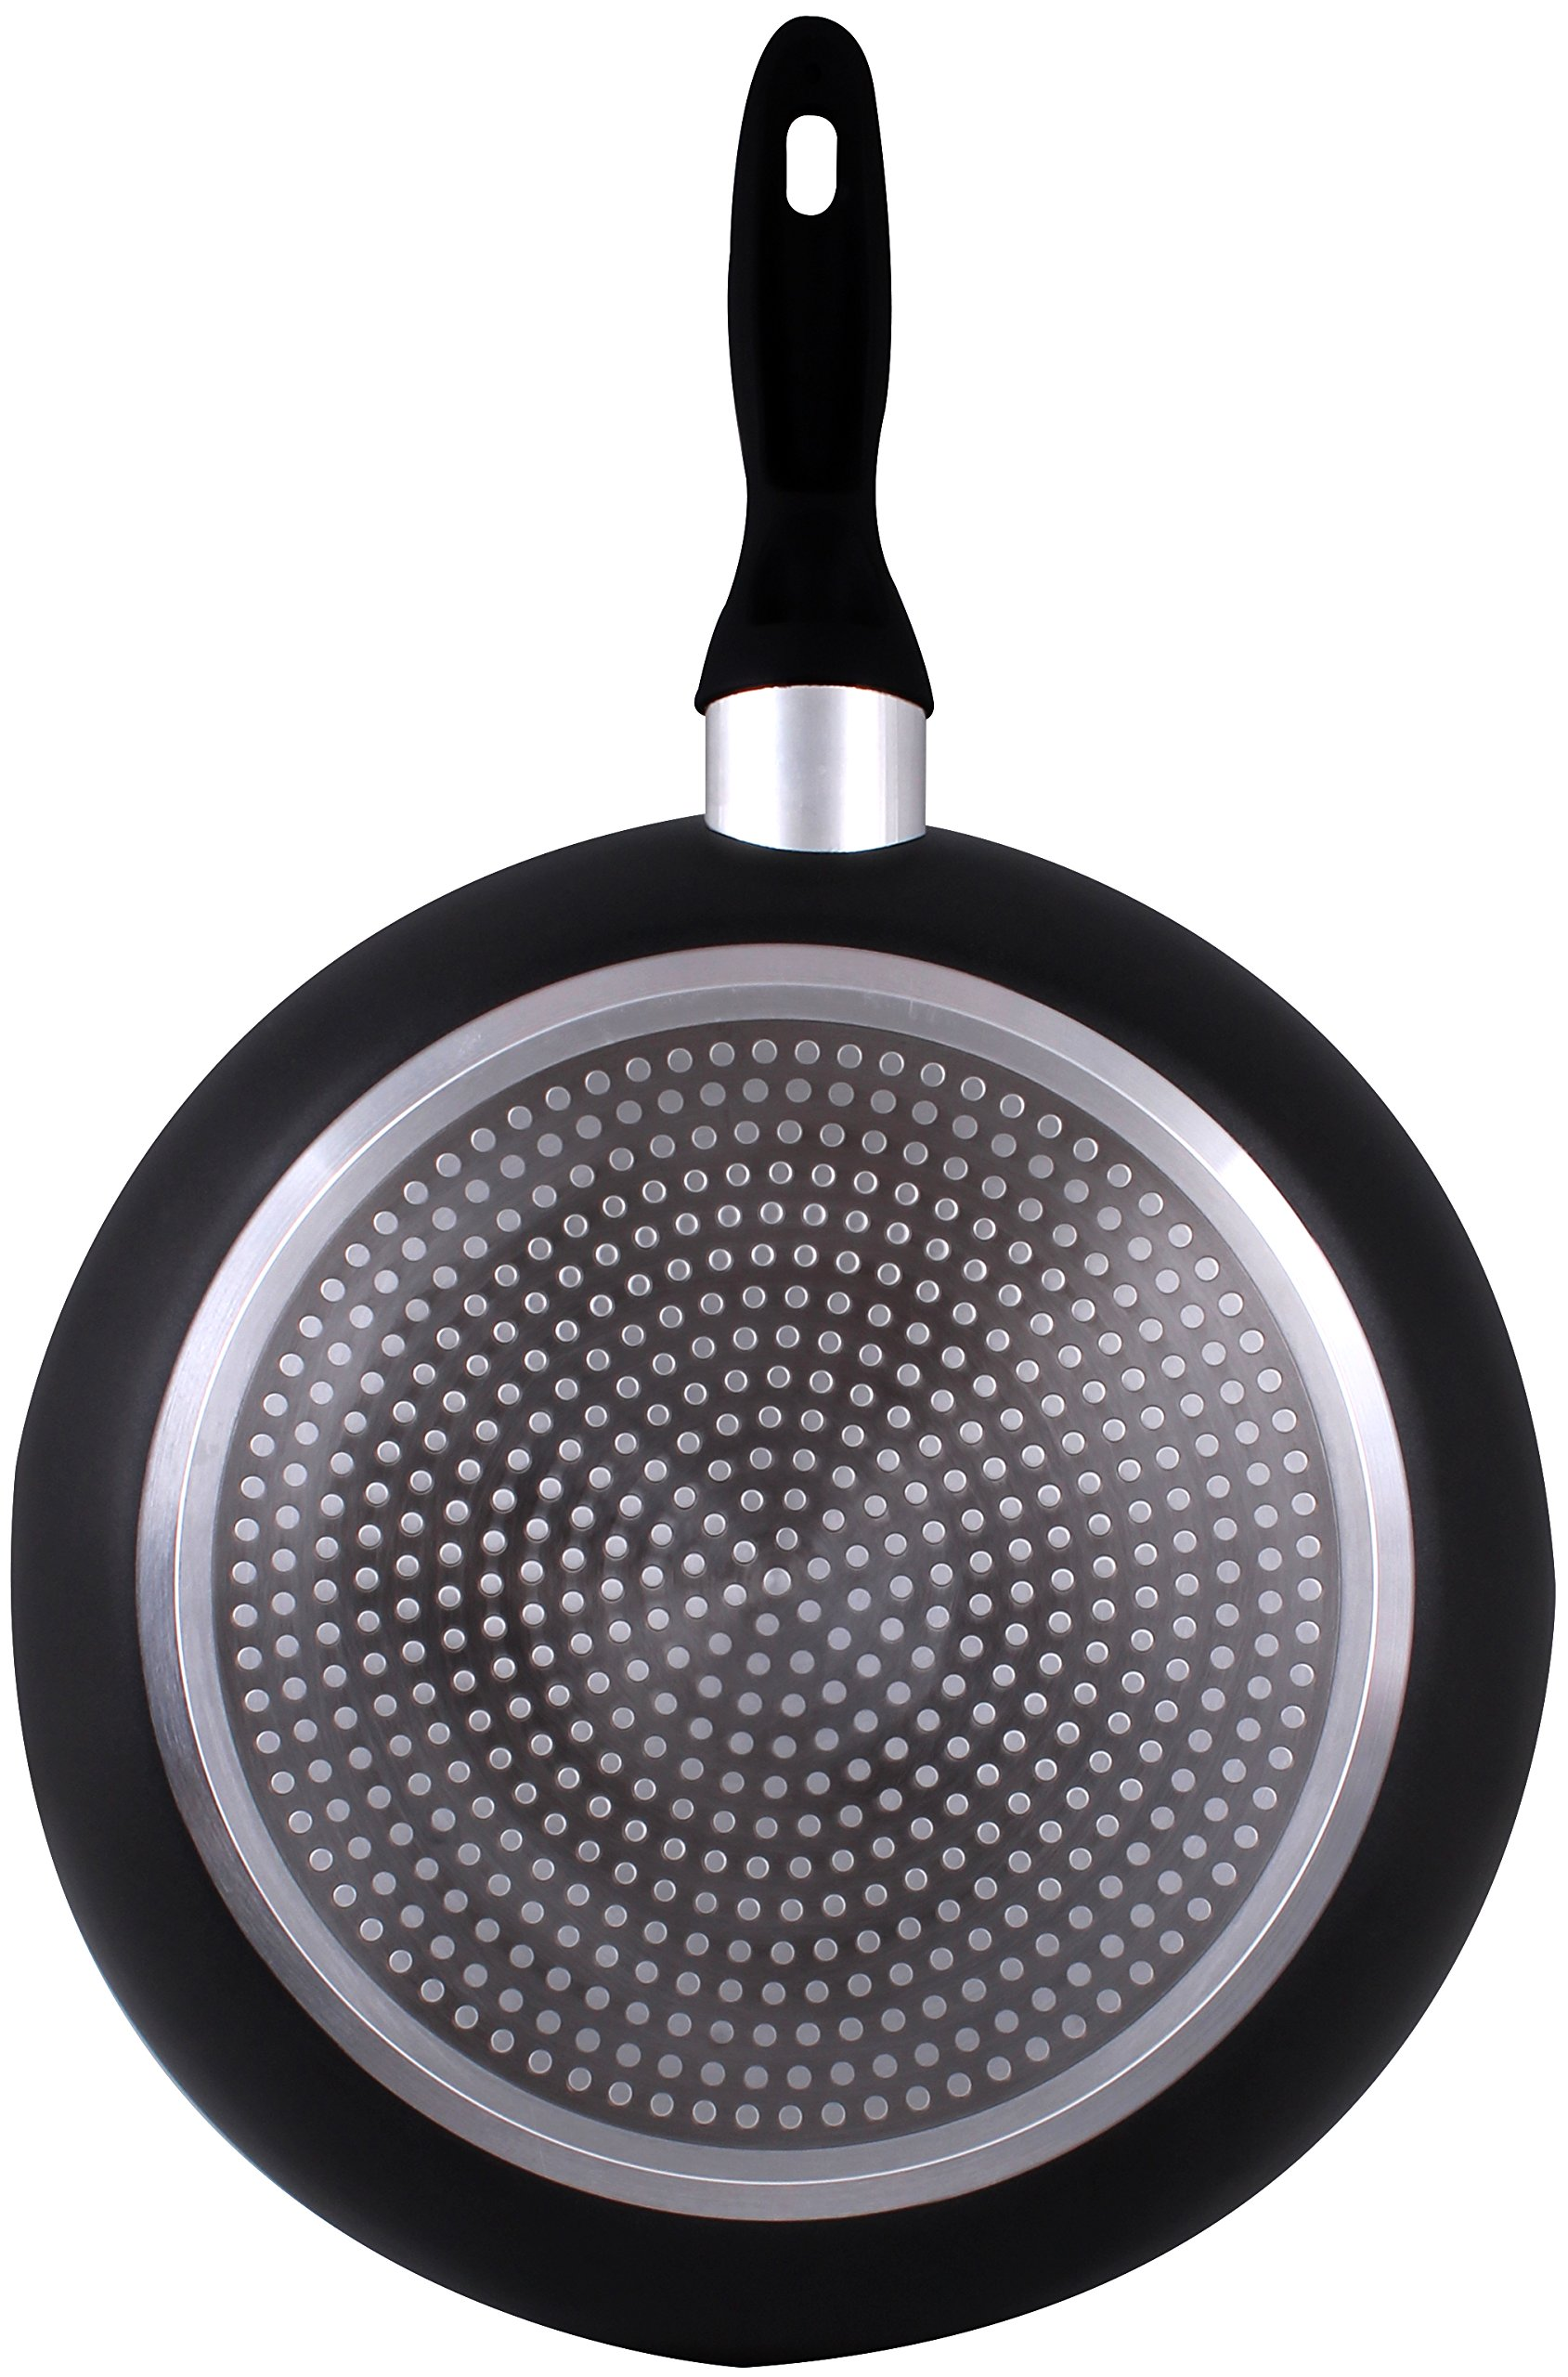 Induction Bottom Aluminum Nonstick Frying-Pan Grey Fry Pan - 11 inches Dishwasher Safe Cookware - by Utopia Kitchen by Utopia Kitchen (Image #5)